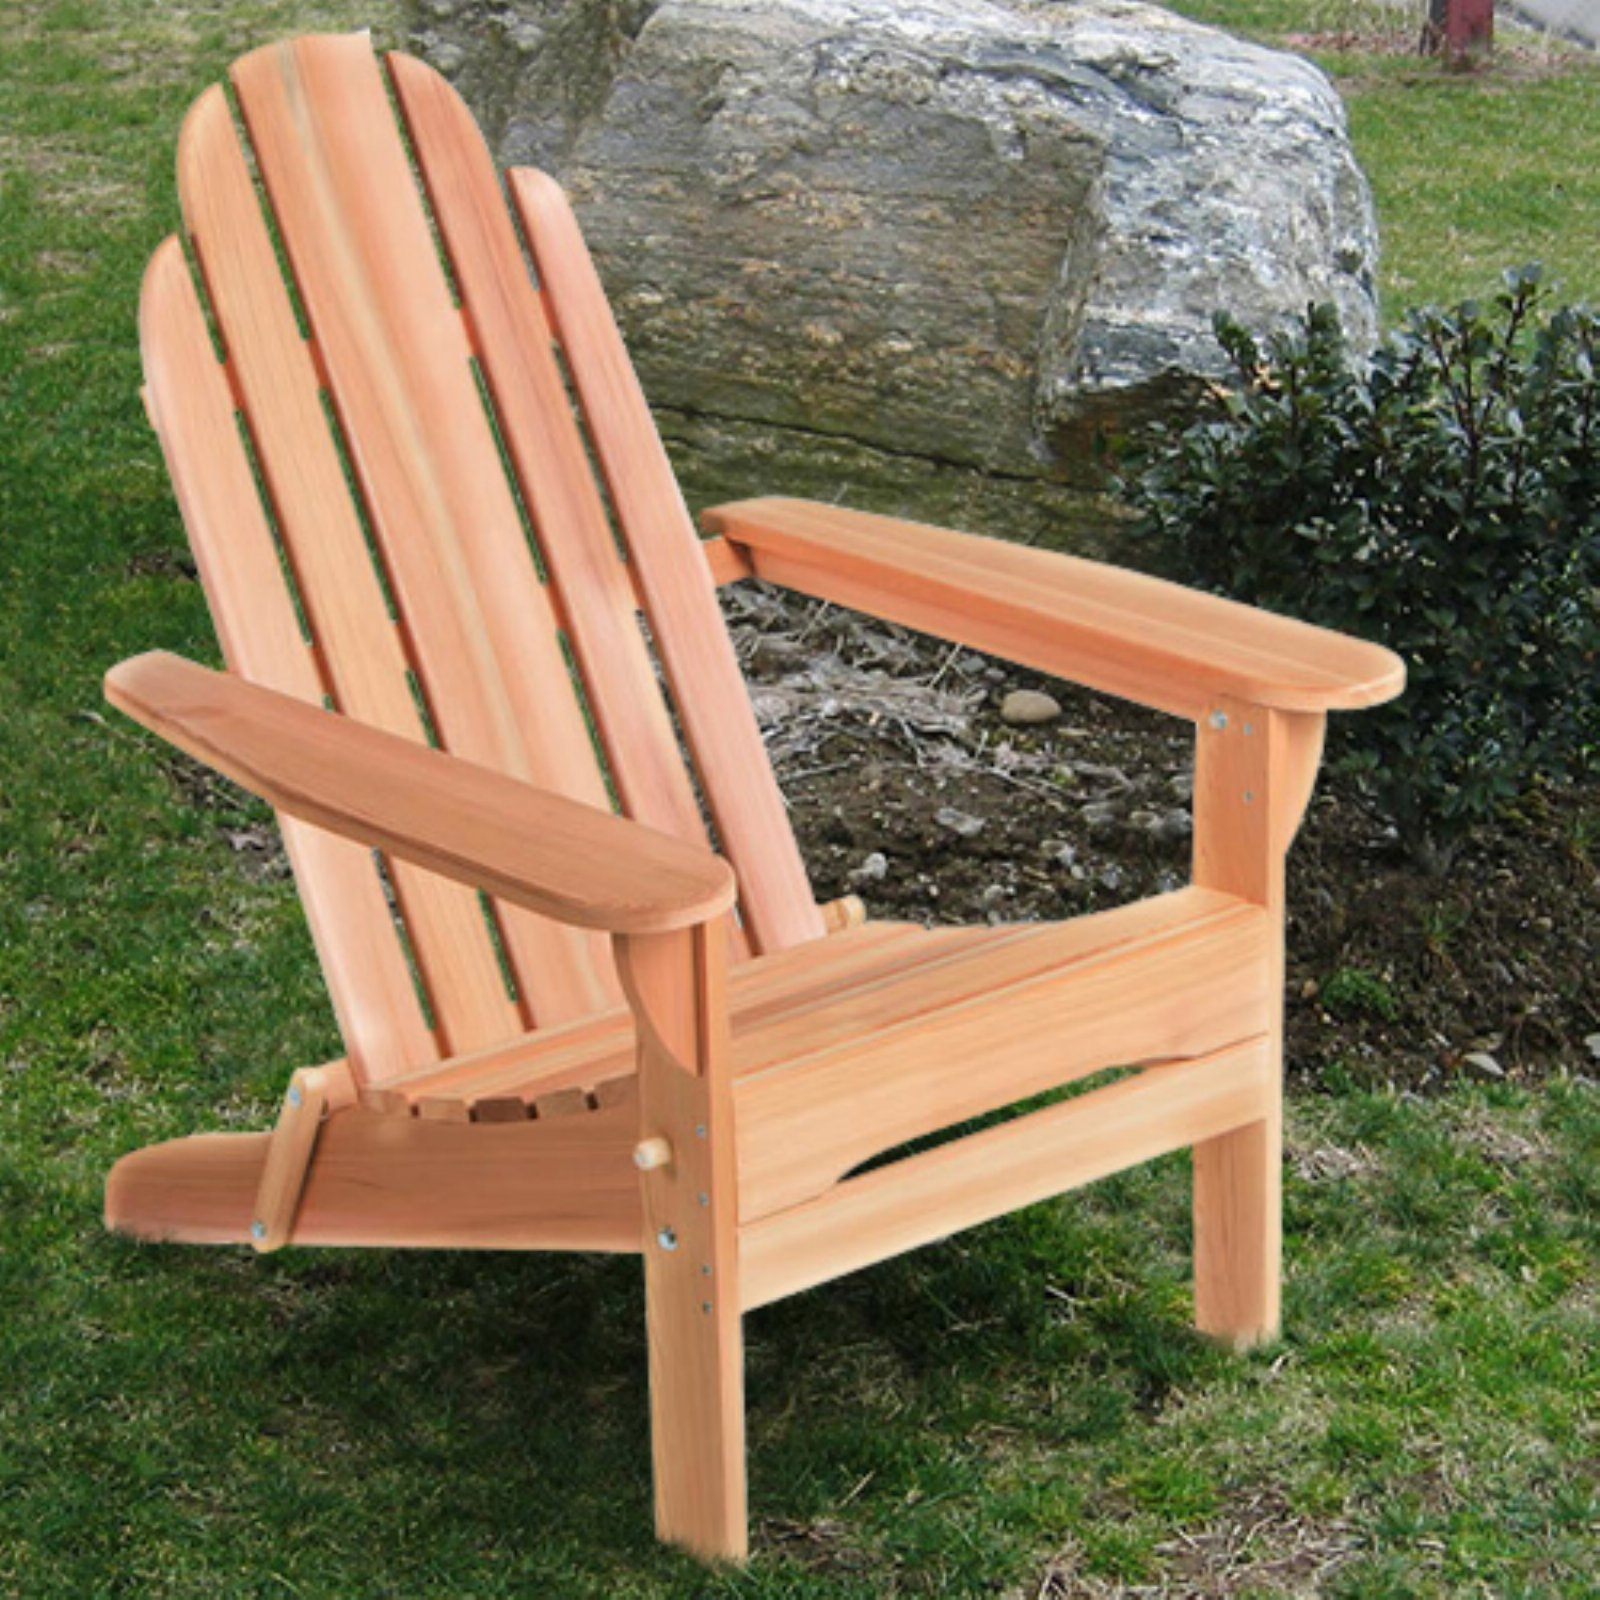 All Things Cedar Folding Adirondack Chair - Western Red Cedar